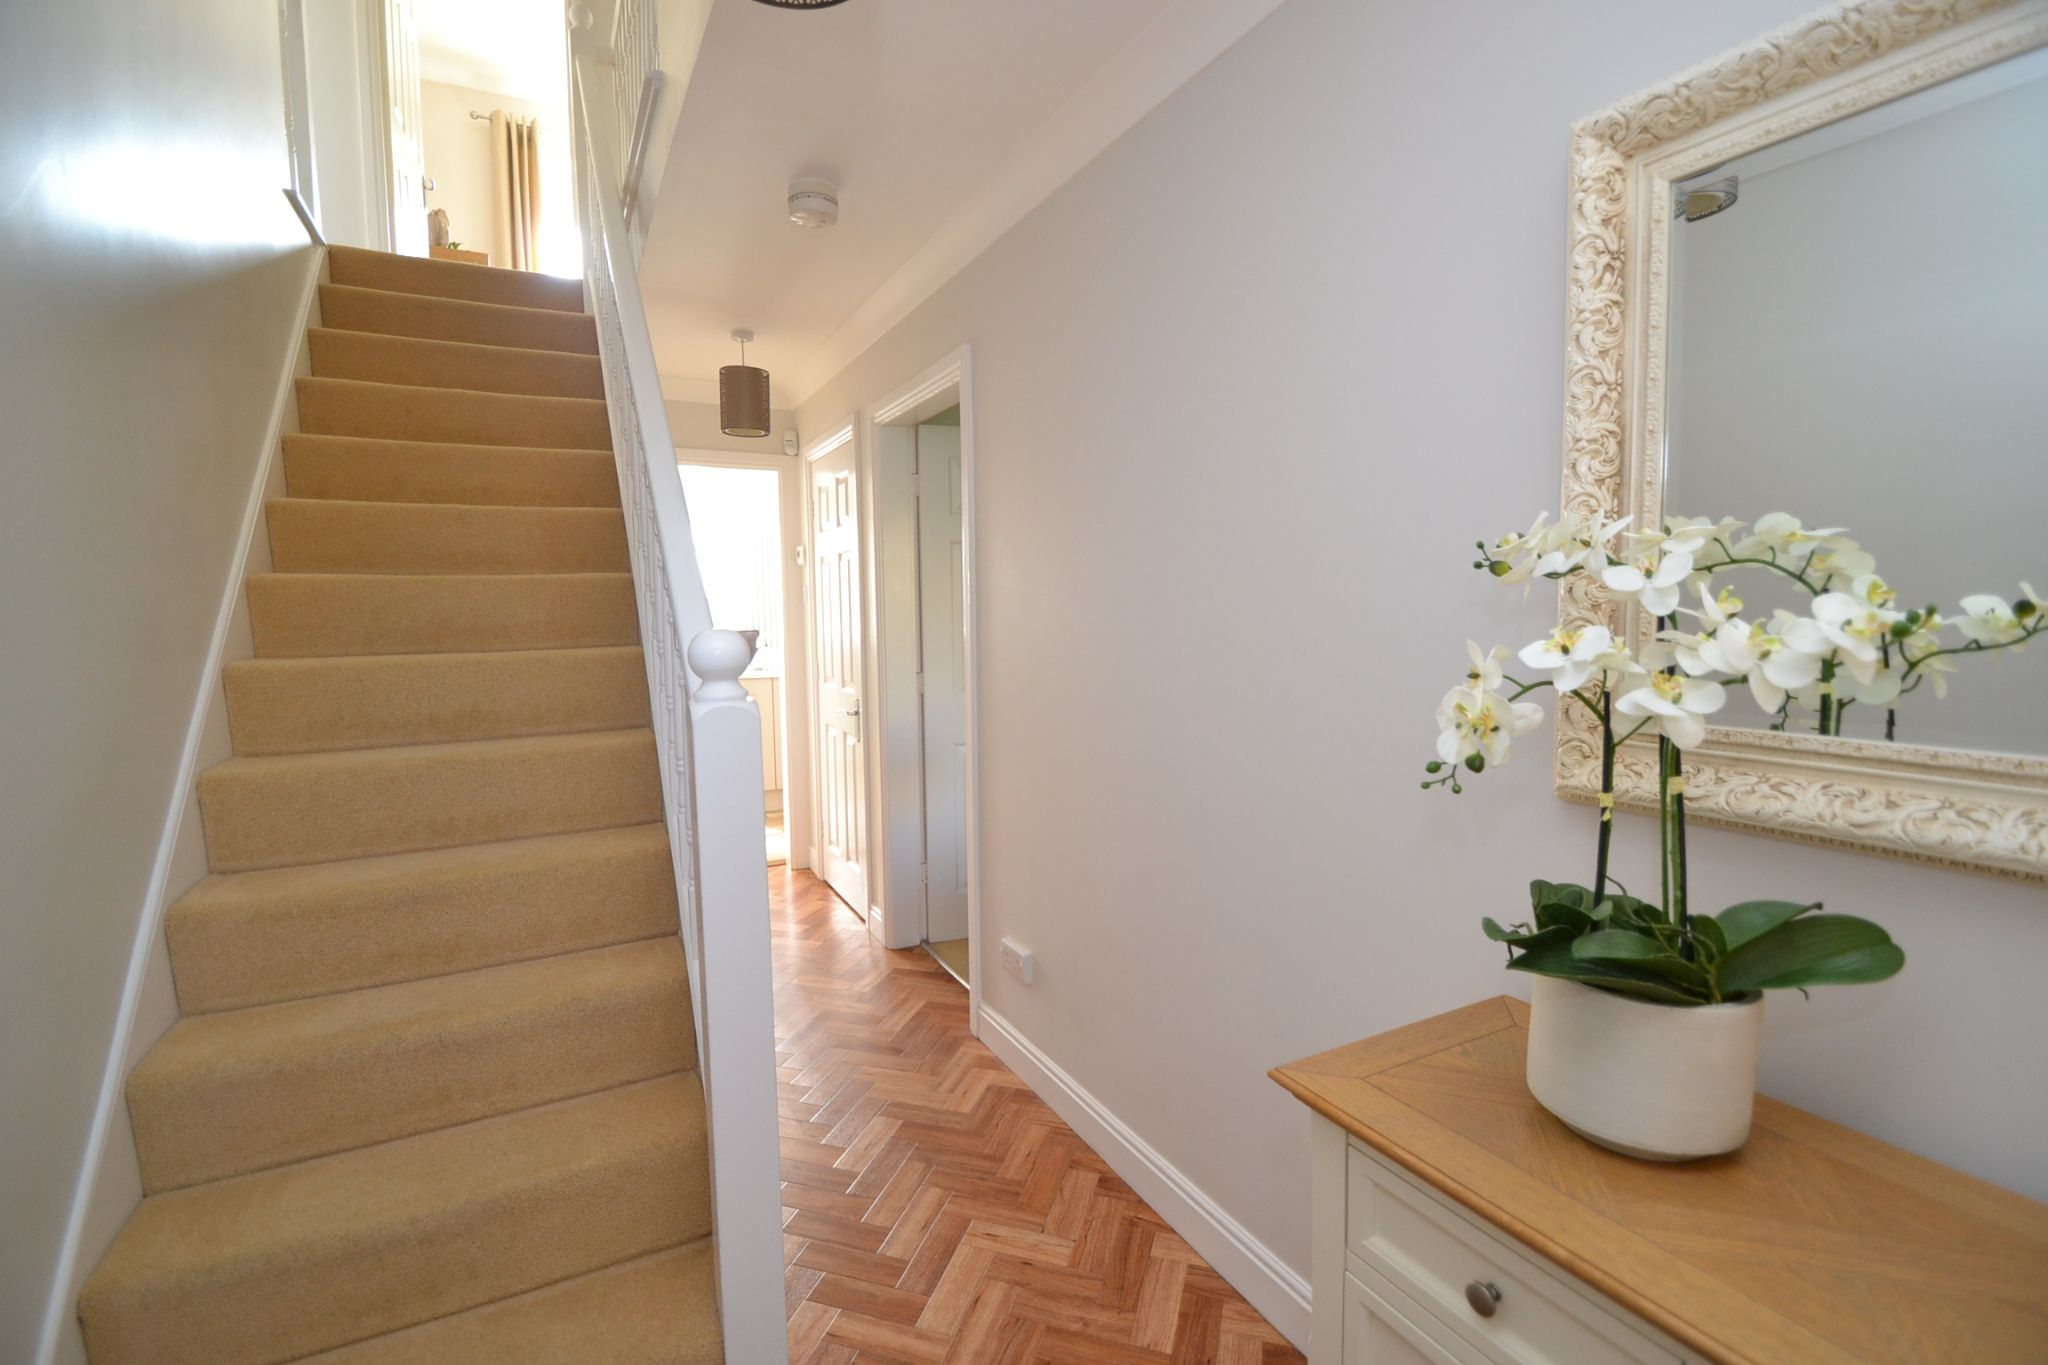 5 Bedroom Detached House For Sale - Photograph 4